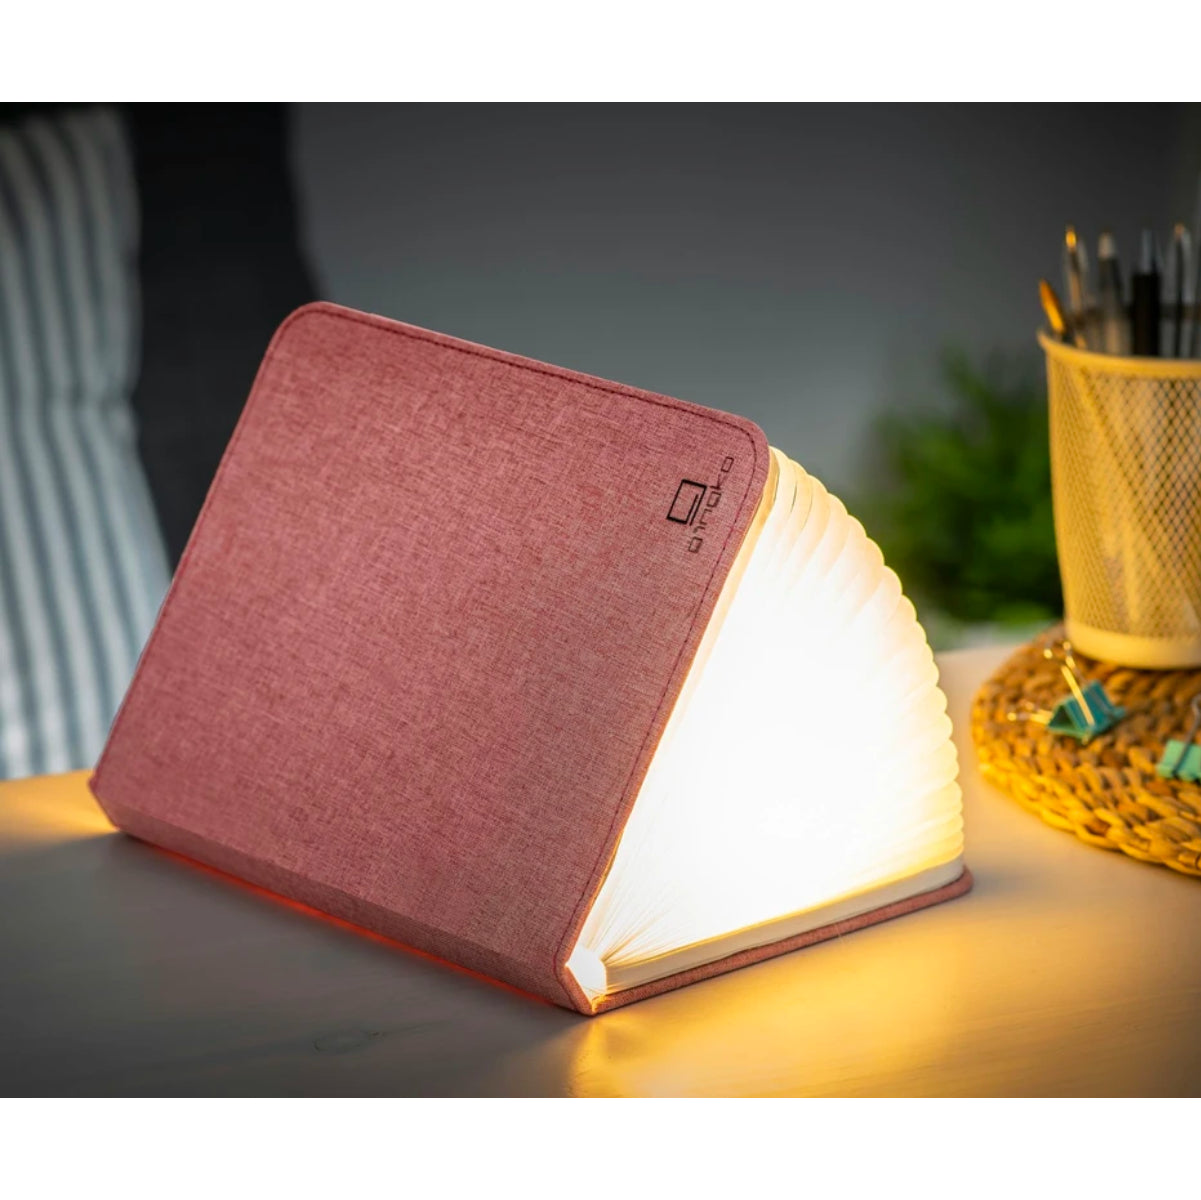 Gingko Smart booklight large , linen pink